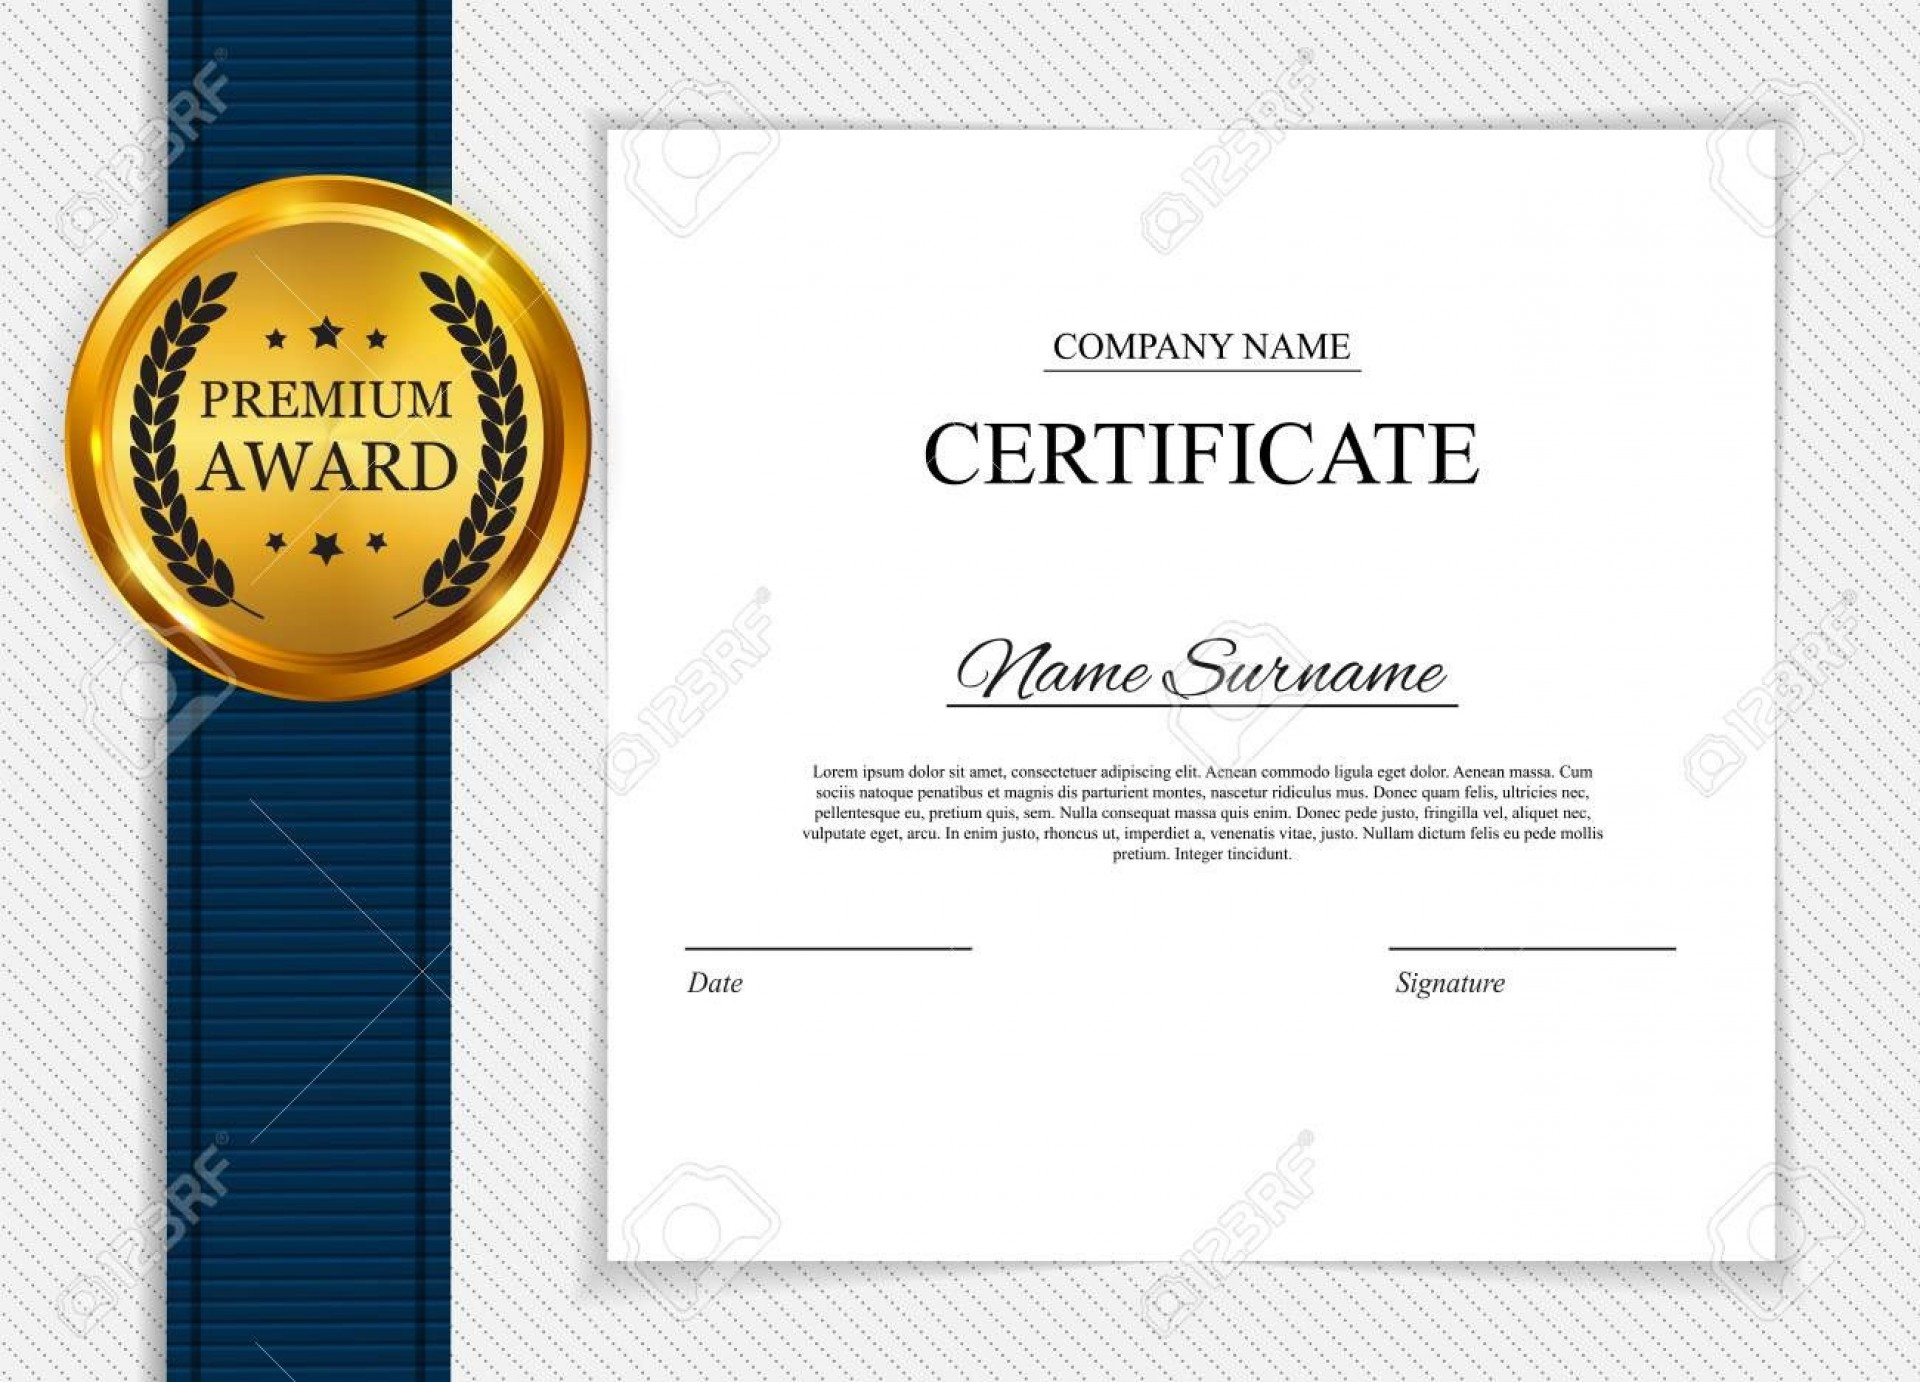 003 Archaicawful Blank Award Certificate Template High Resolution  Printable Math Editable Free1920